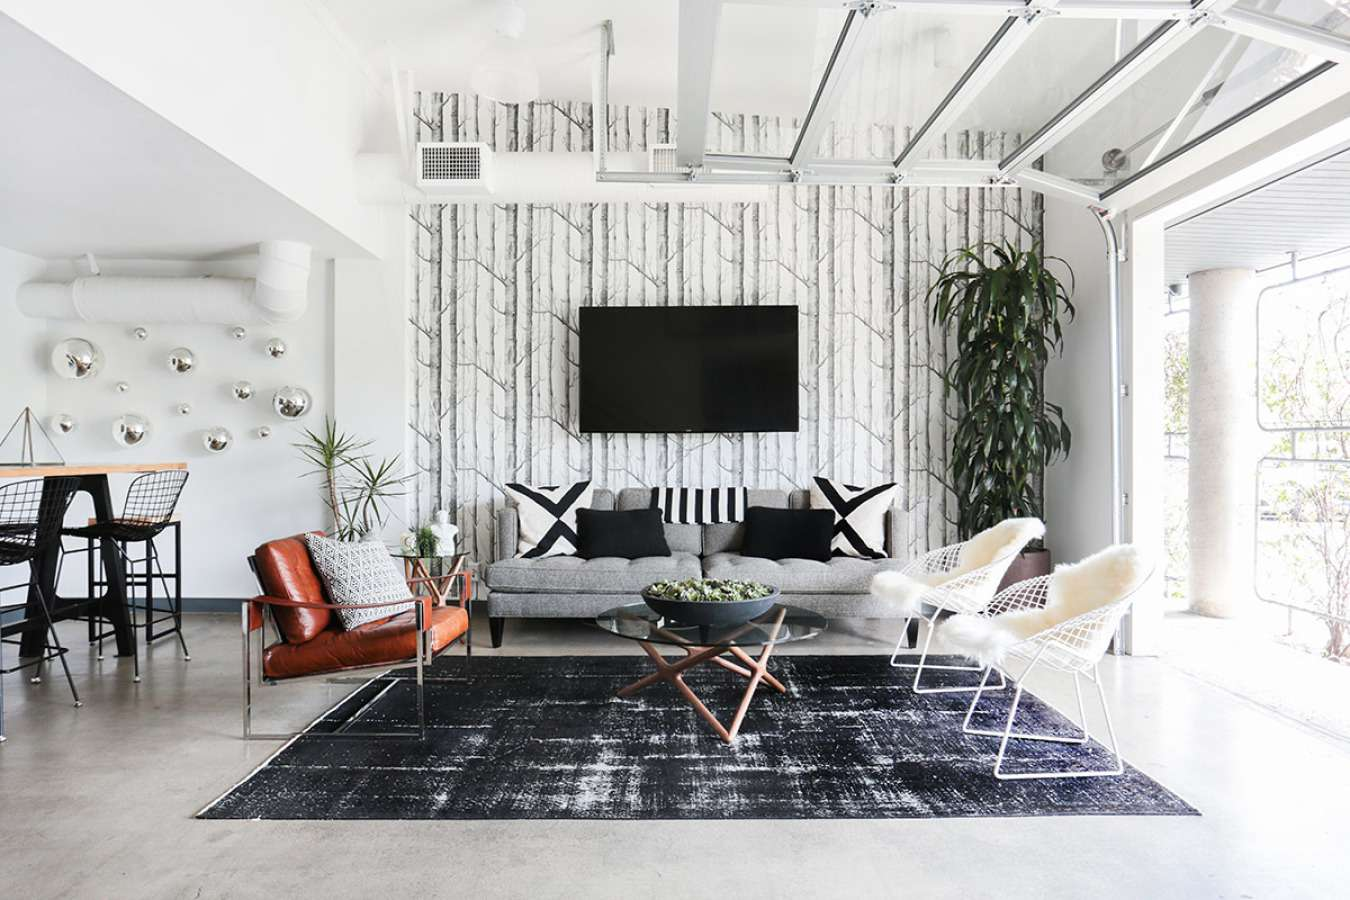 Room with a dark gray rug